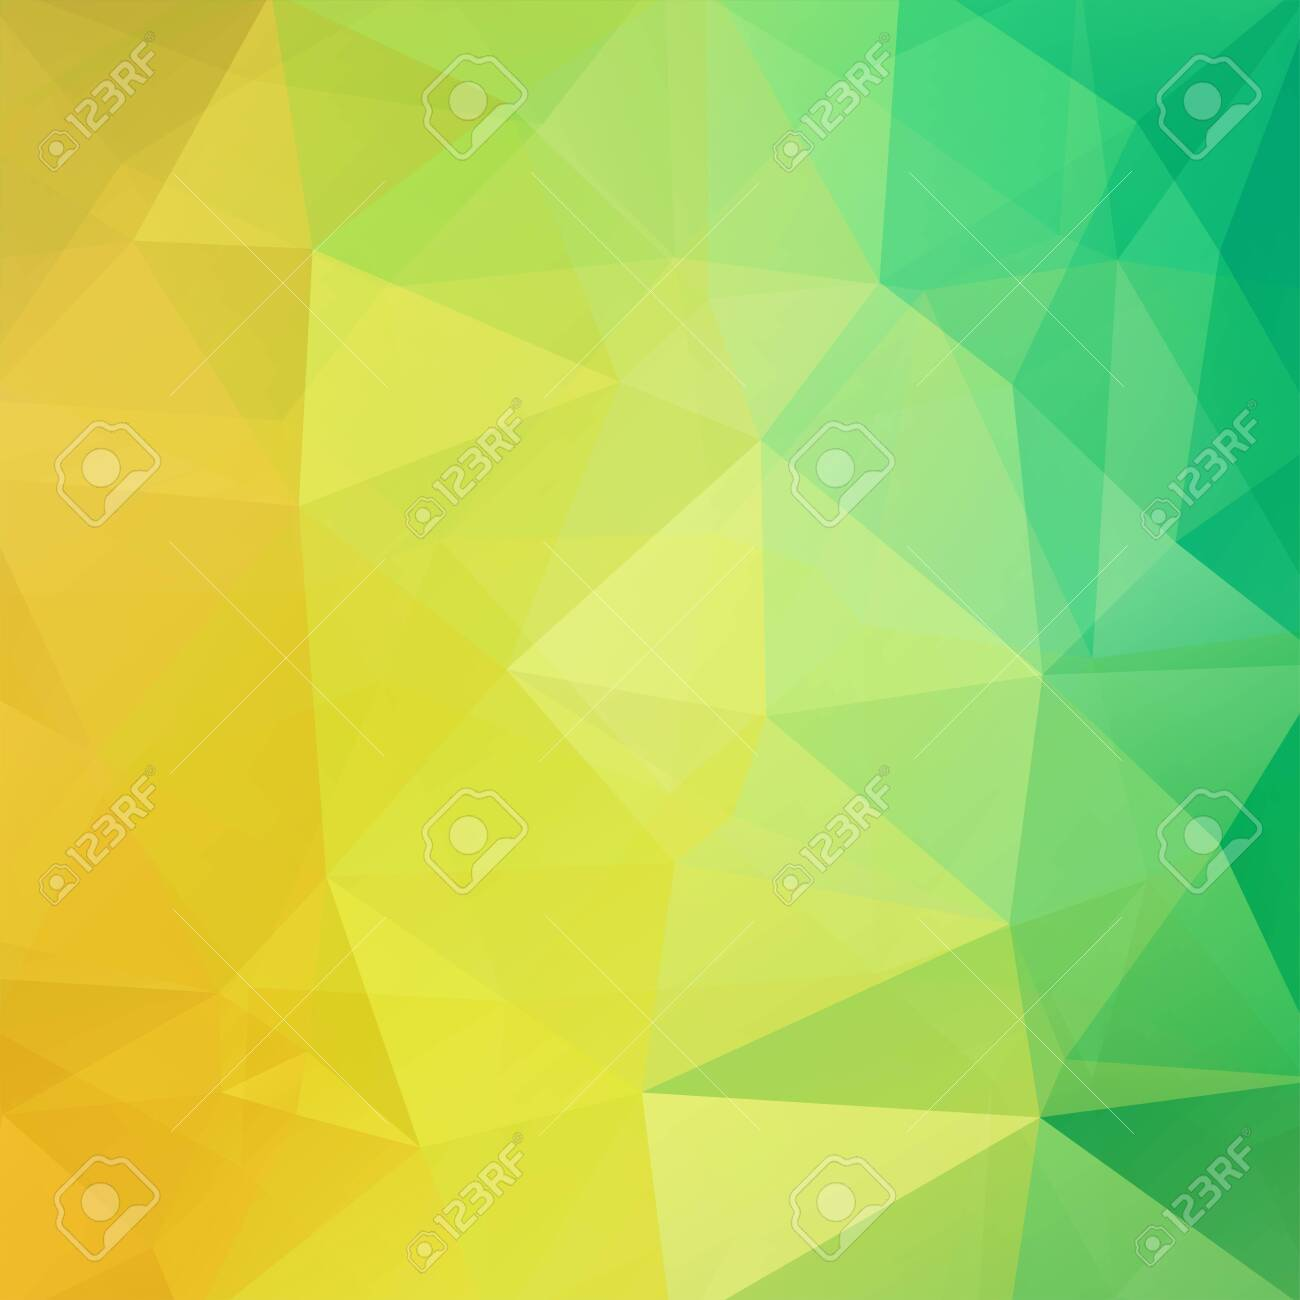 Background made of yellow, green triangles. Square composition with geometric shapes. - 121991422